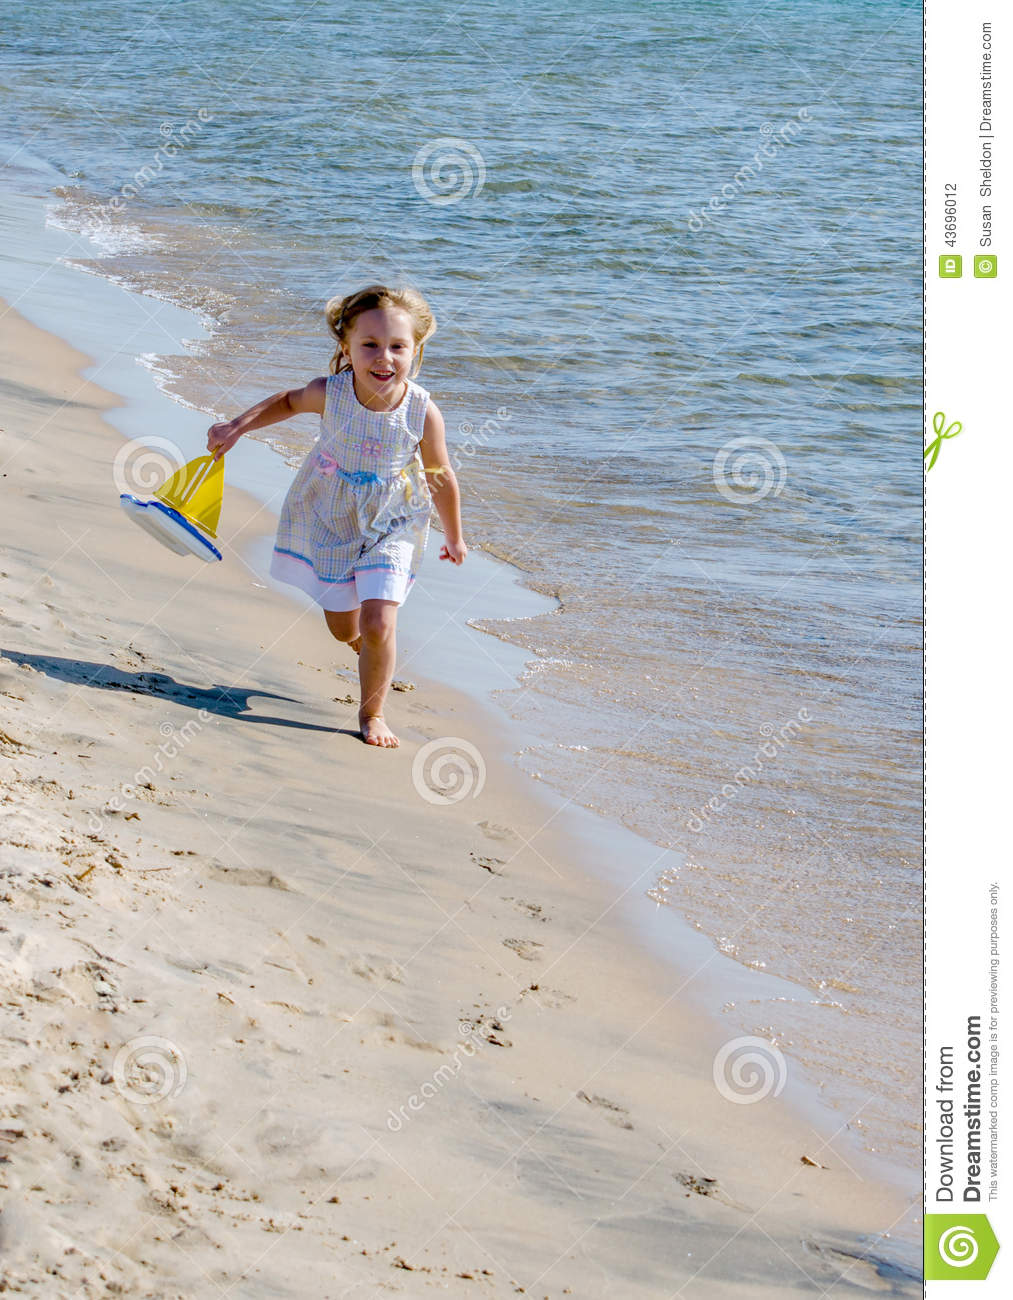 Happy child running on beach with toy boat